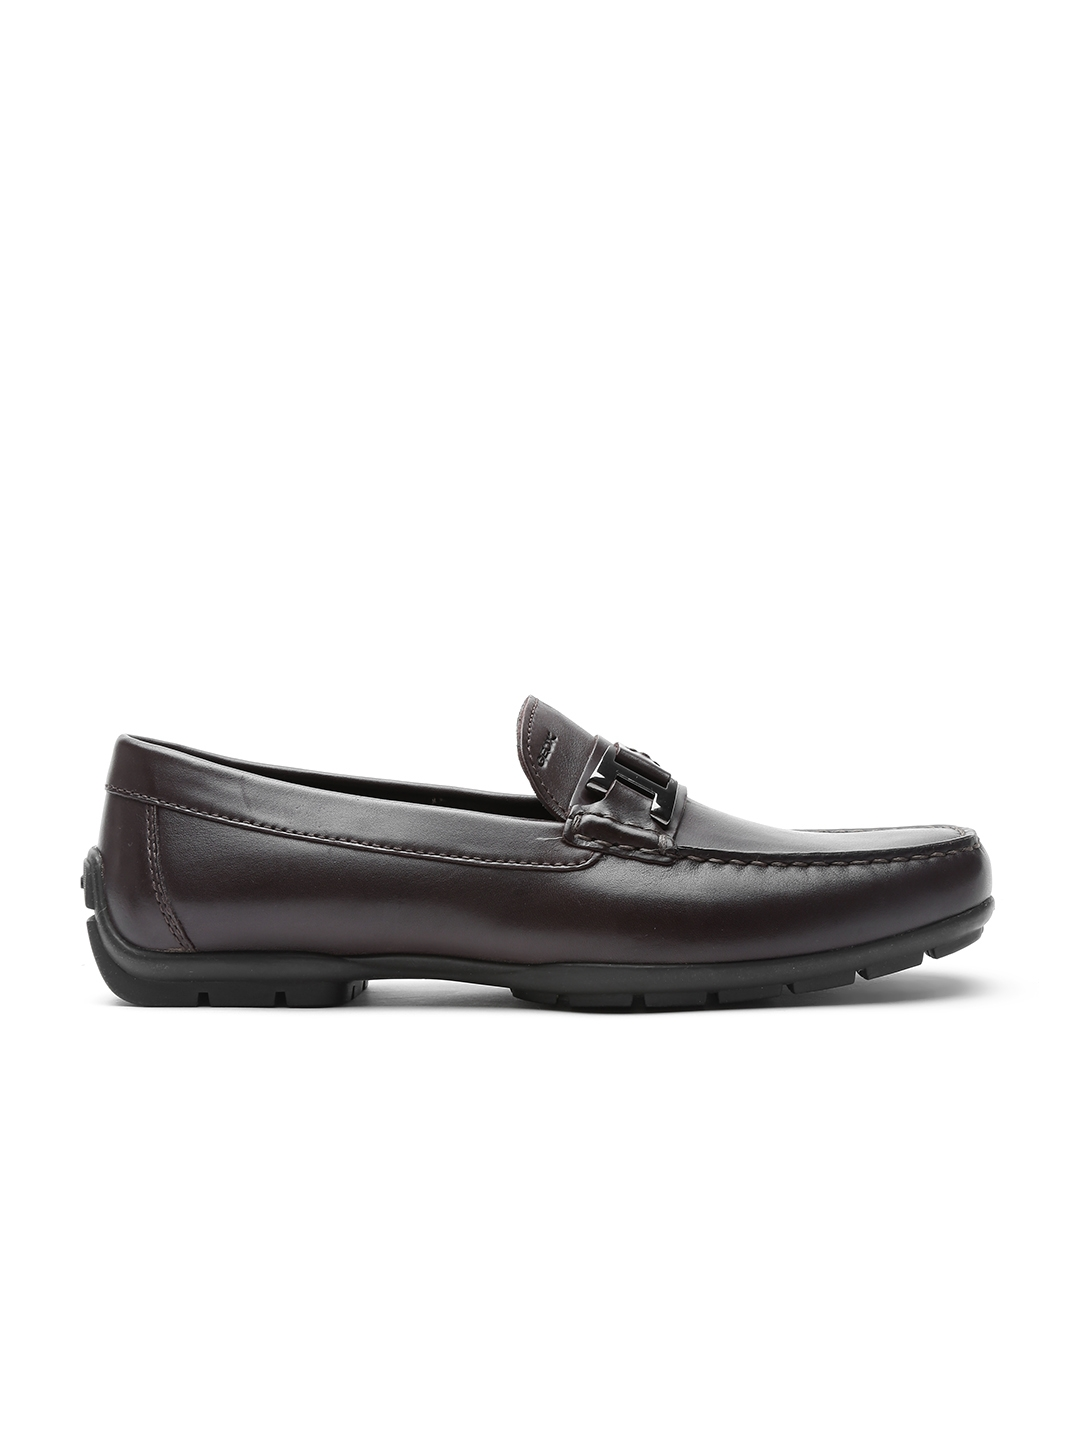 c98bd39bf2 GEOX Respira Men Dark Brown Breathable Italian Patent Leather Loafers